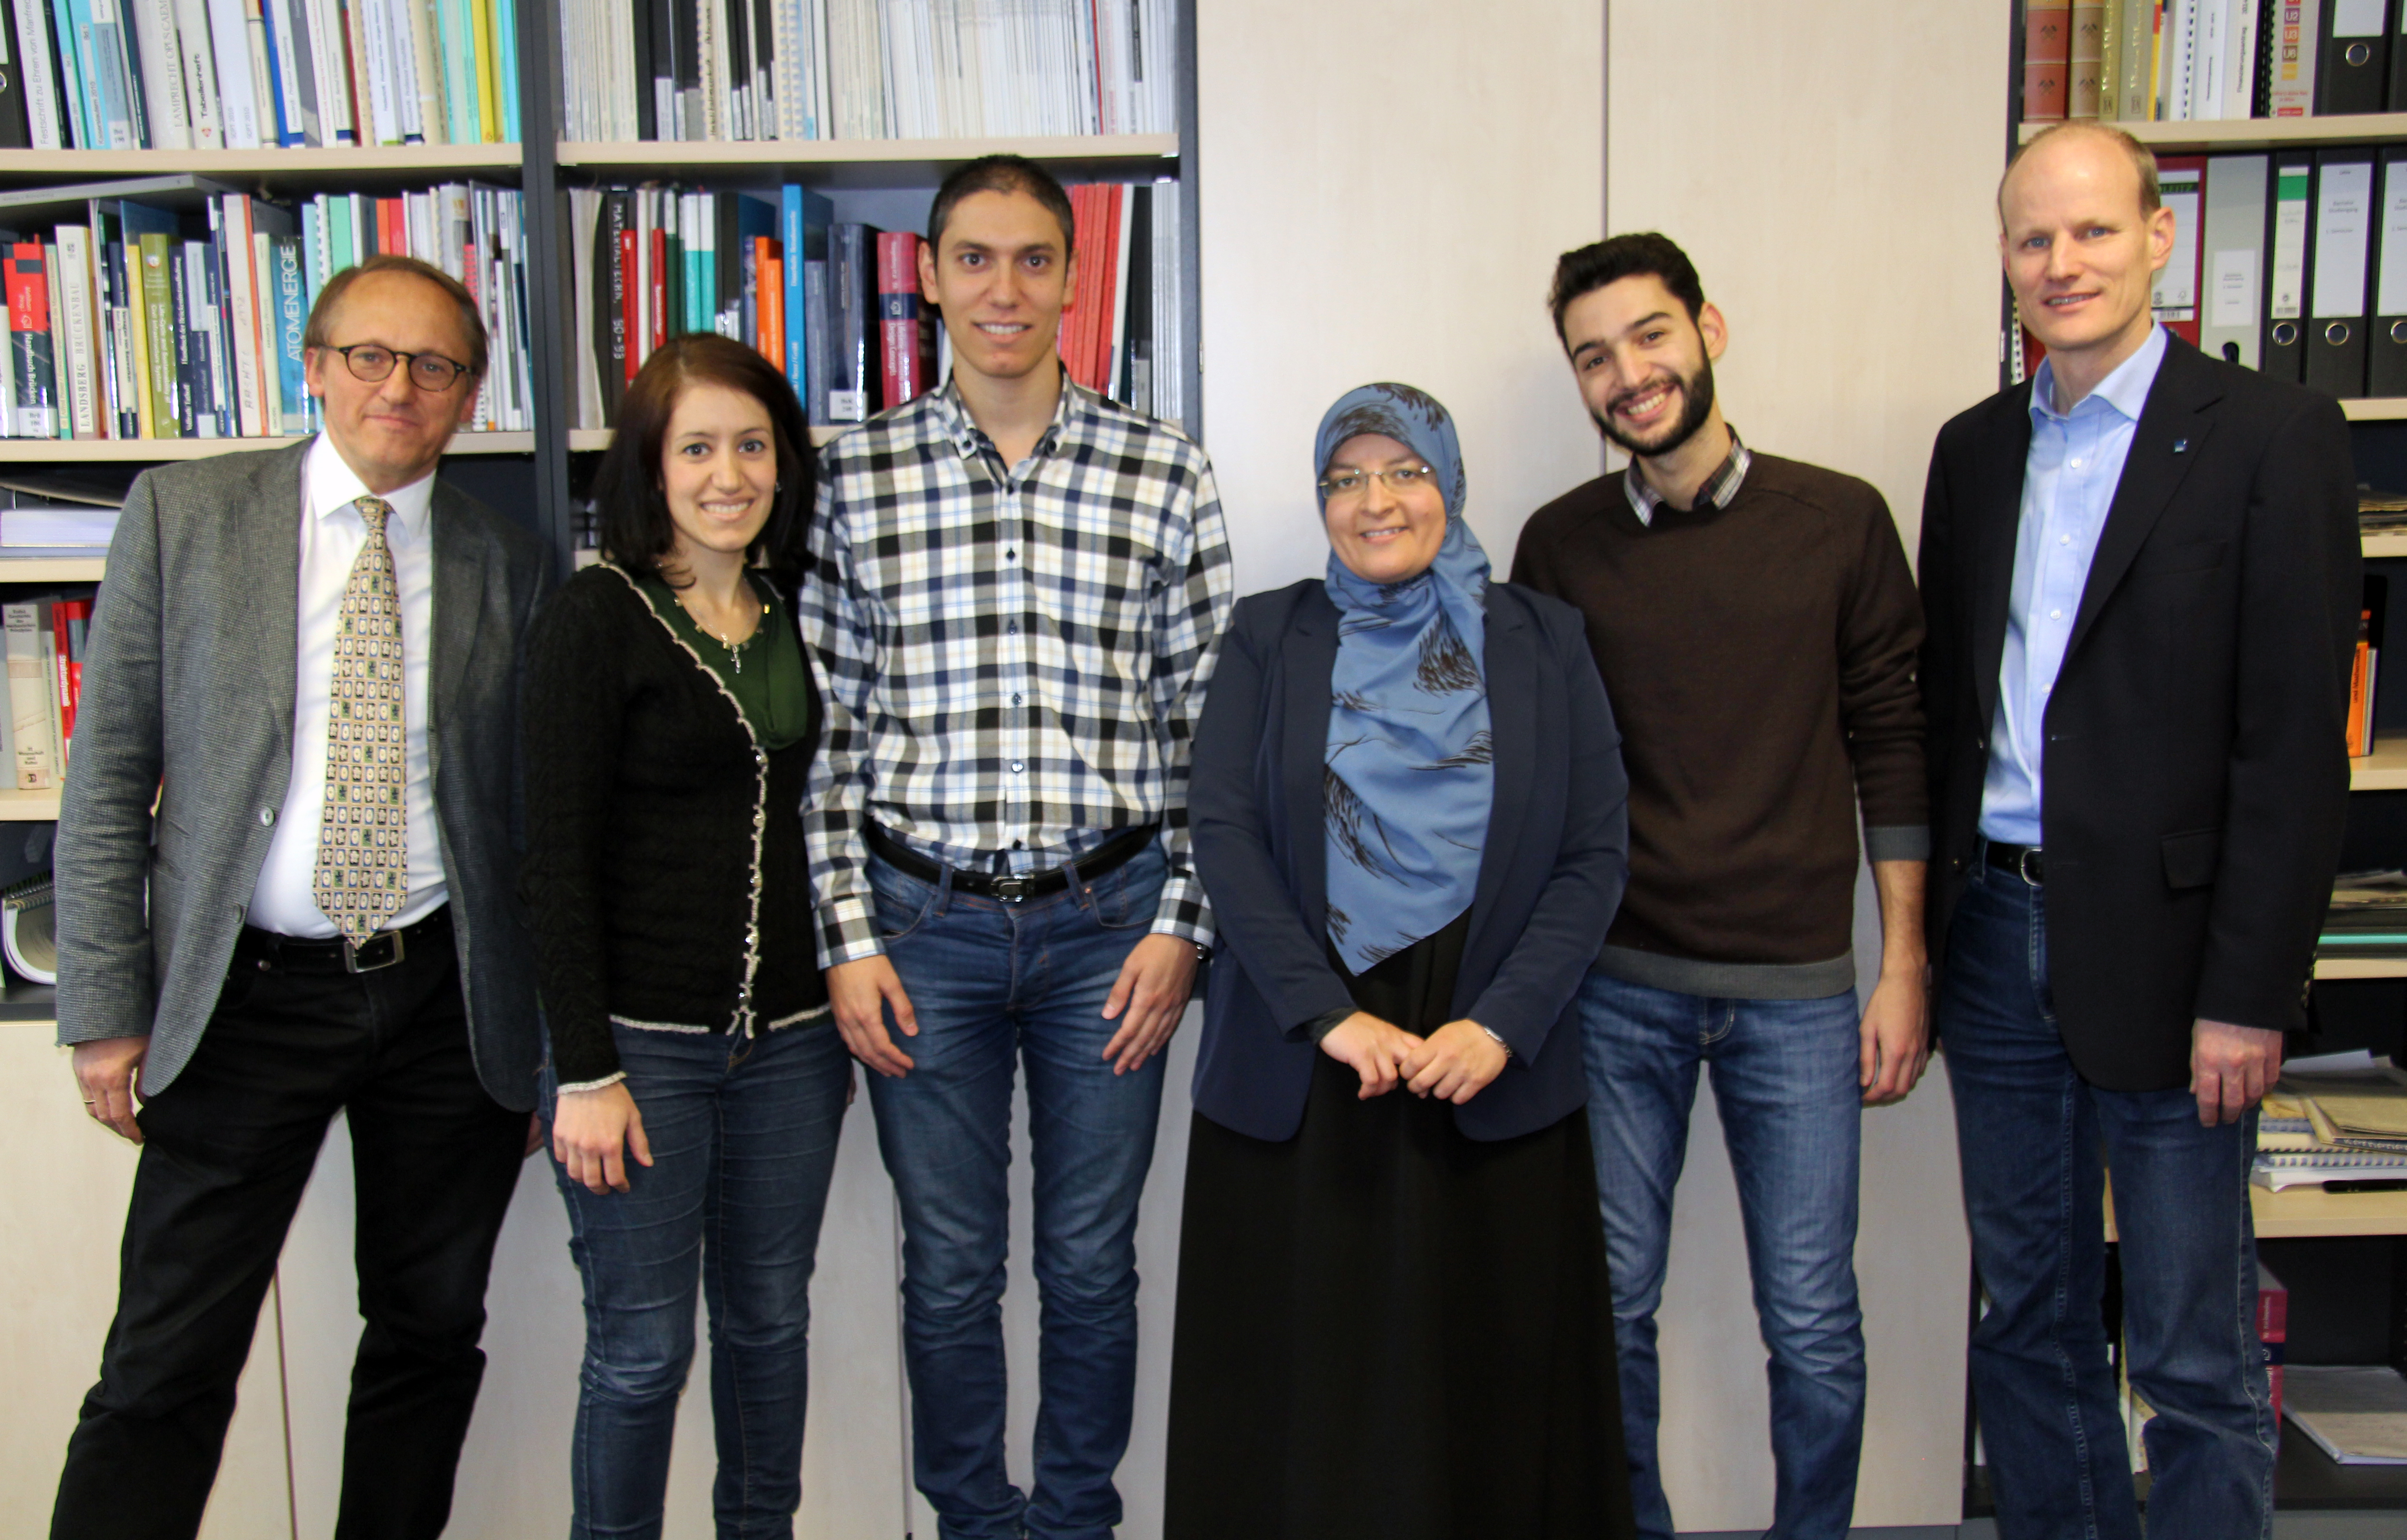 FLTR: Prof. Günther Meschke, Ghina Jezdan, Jehad Jezdan, Areeg Shermaddo, Mazen Draw, Prof. Peter Mark Prof. Mark (Dean of the Department of Civil and Environmental Engineering) and Prof. Meschke (Spokesperson of the Collaborative Research Center 837)